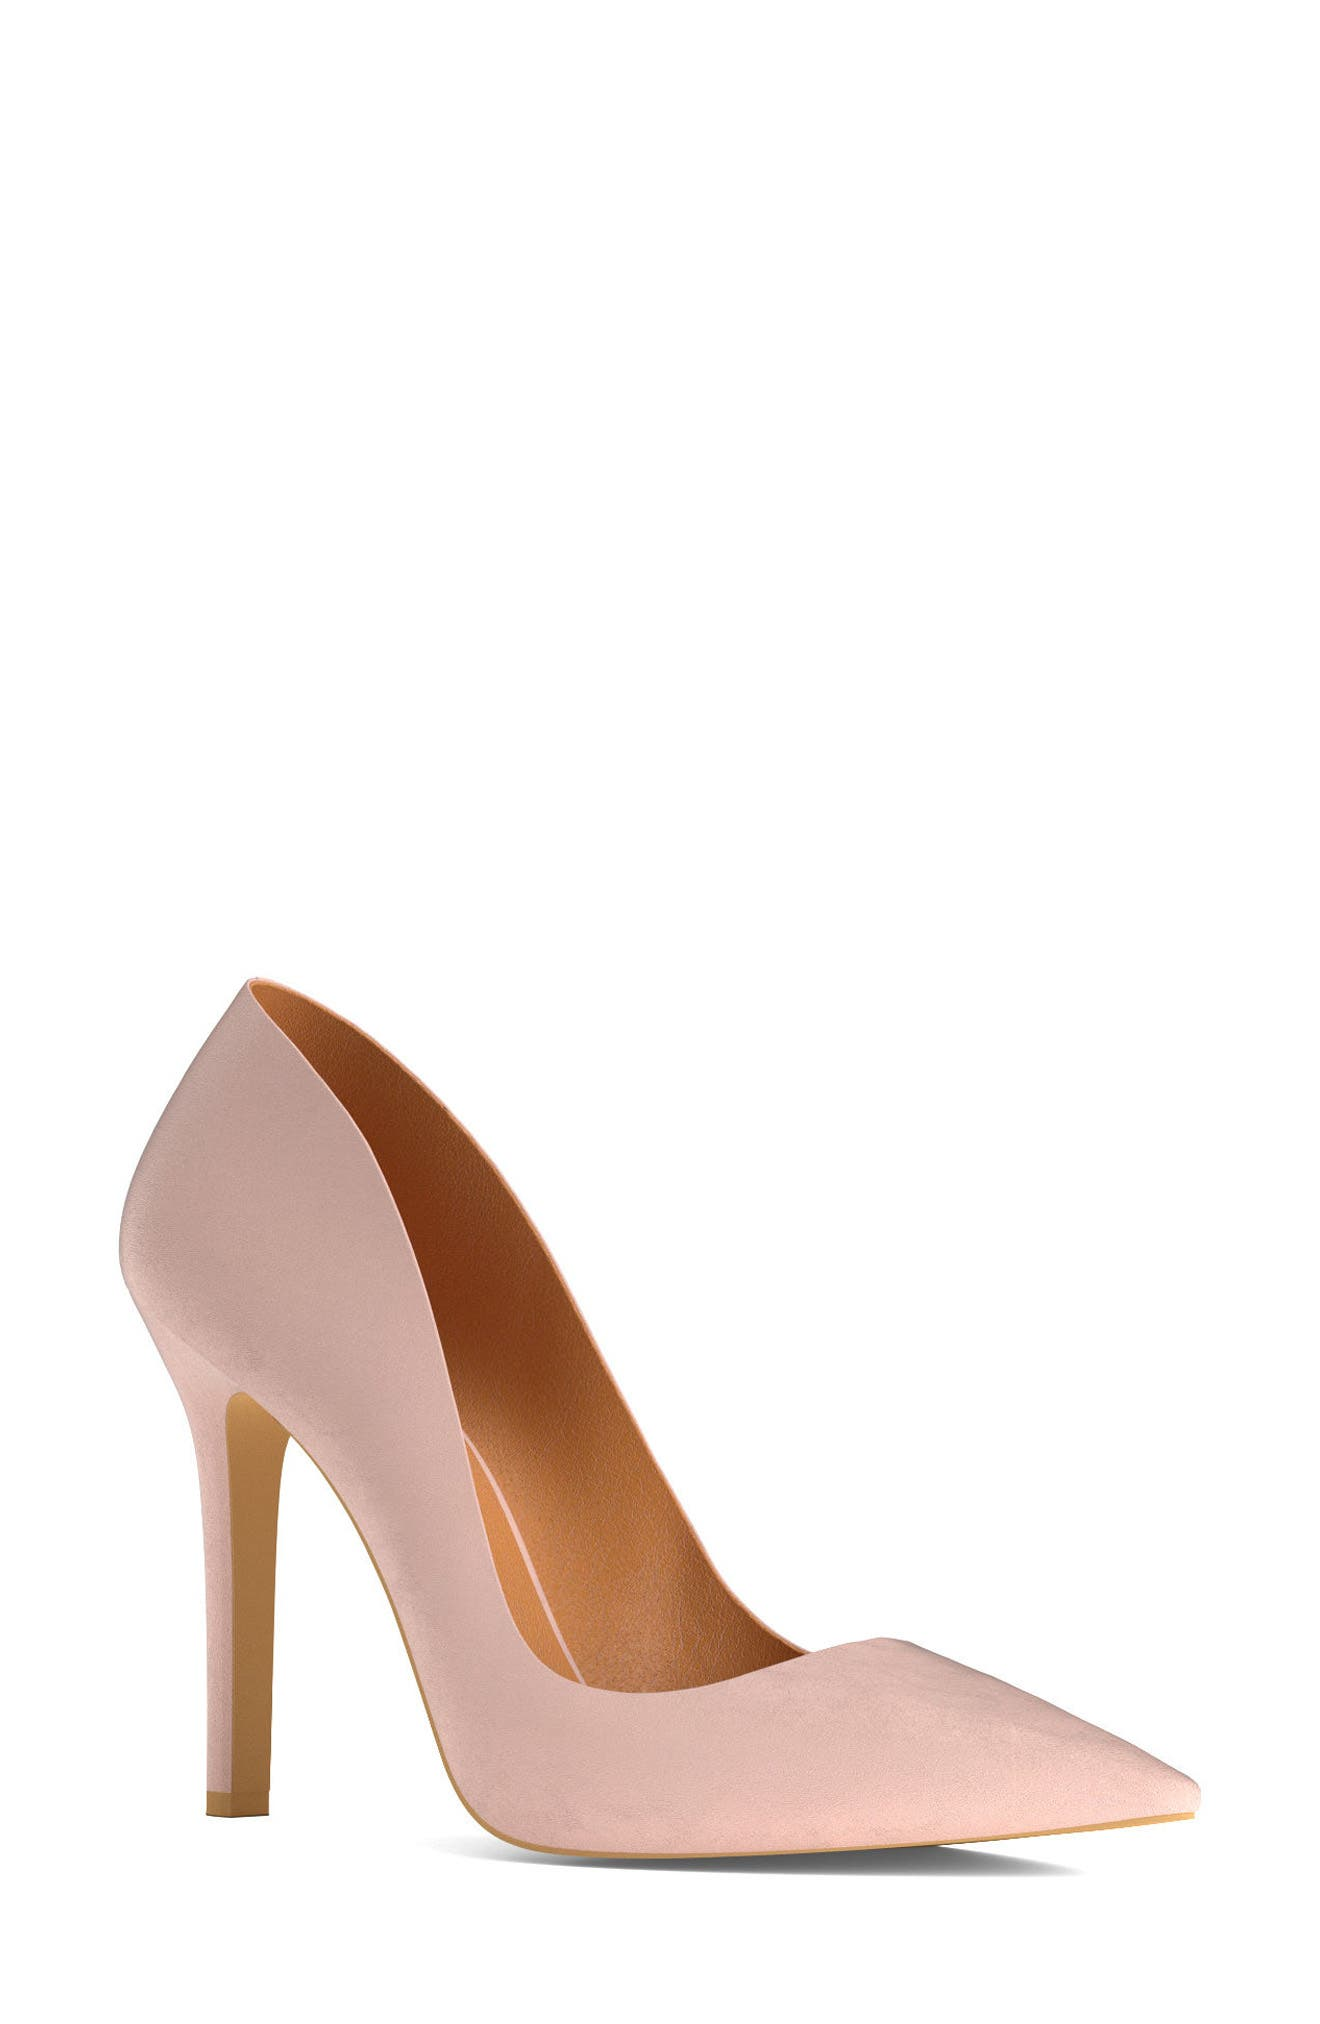 Pointy Toe Pump,                         Main,                         color, Blush Nude Leather